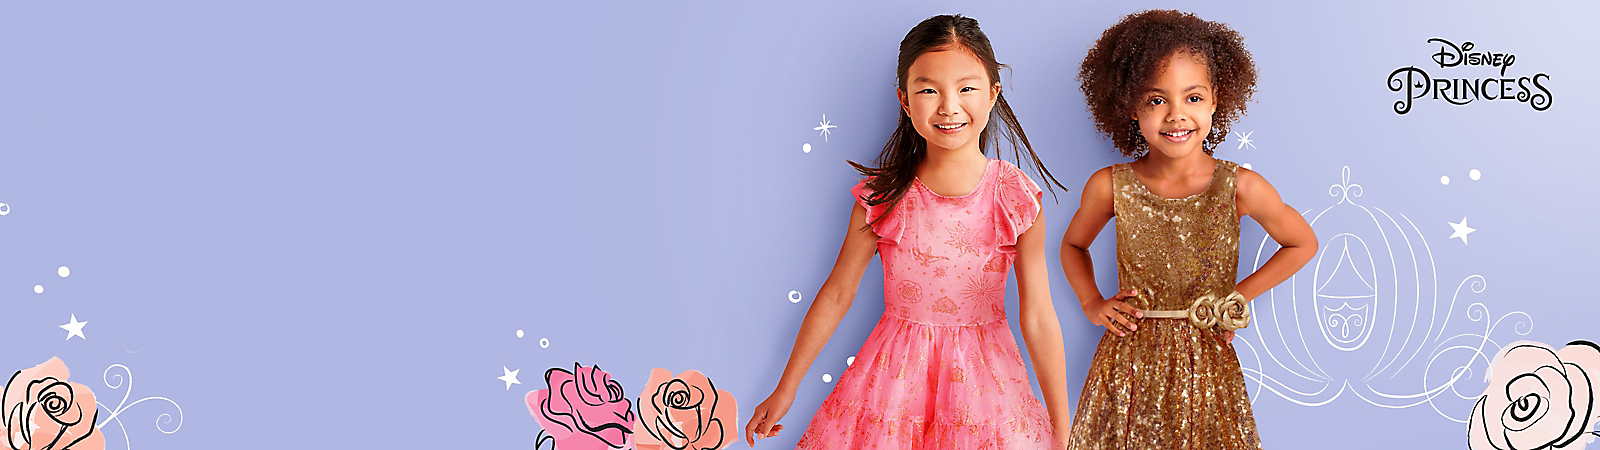 Disney Princess Royal adventures await when you dream big with our collection of the fanciest dresses, finest accessories, toys, costumes & more.